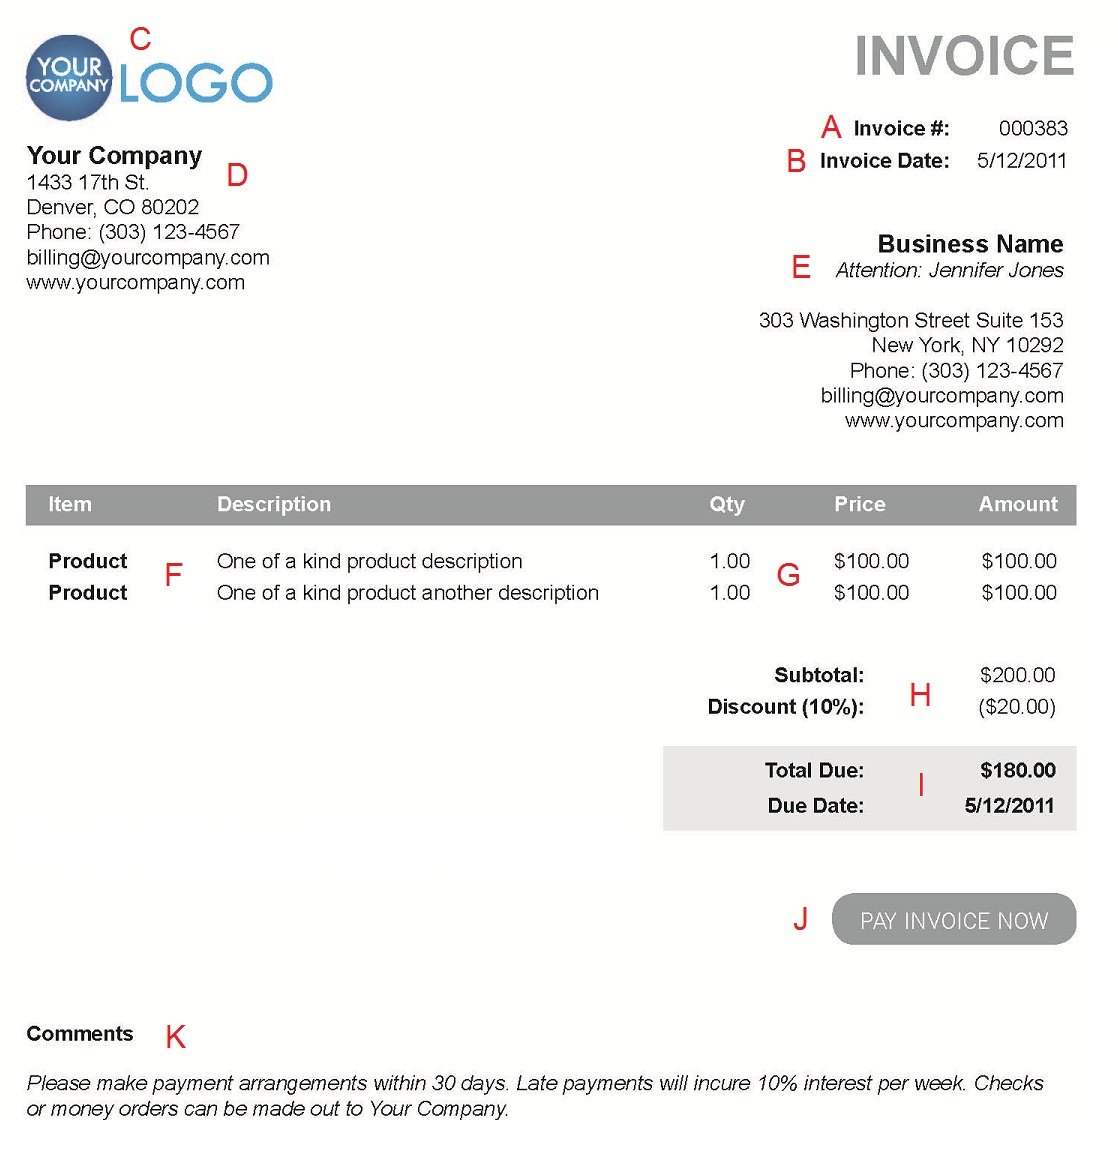 Ebitus  Pretty The  Different Sections Of An Electronic Payment Invoice With Heavenly A  With Delectable Invoice Template Free Excel Also Invoice Example Template In Addition Usps Invoice Number And Invoices In Quickbooks As Well As Make An Invoice In Google Docs Additionally Vehicle Invoice Prices From Paysimplecom With Ebitus  Heavenly The  Different Sections Of An Electronic Payment Invoice With Delectable A  And Pretty Invoice Template Free Excel Also Invoice Example Template In Addition Usps Invoice Number From Paysimplecom